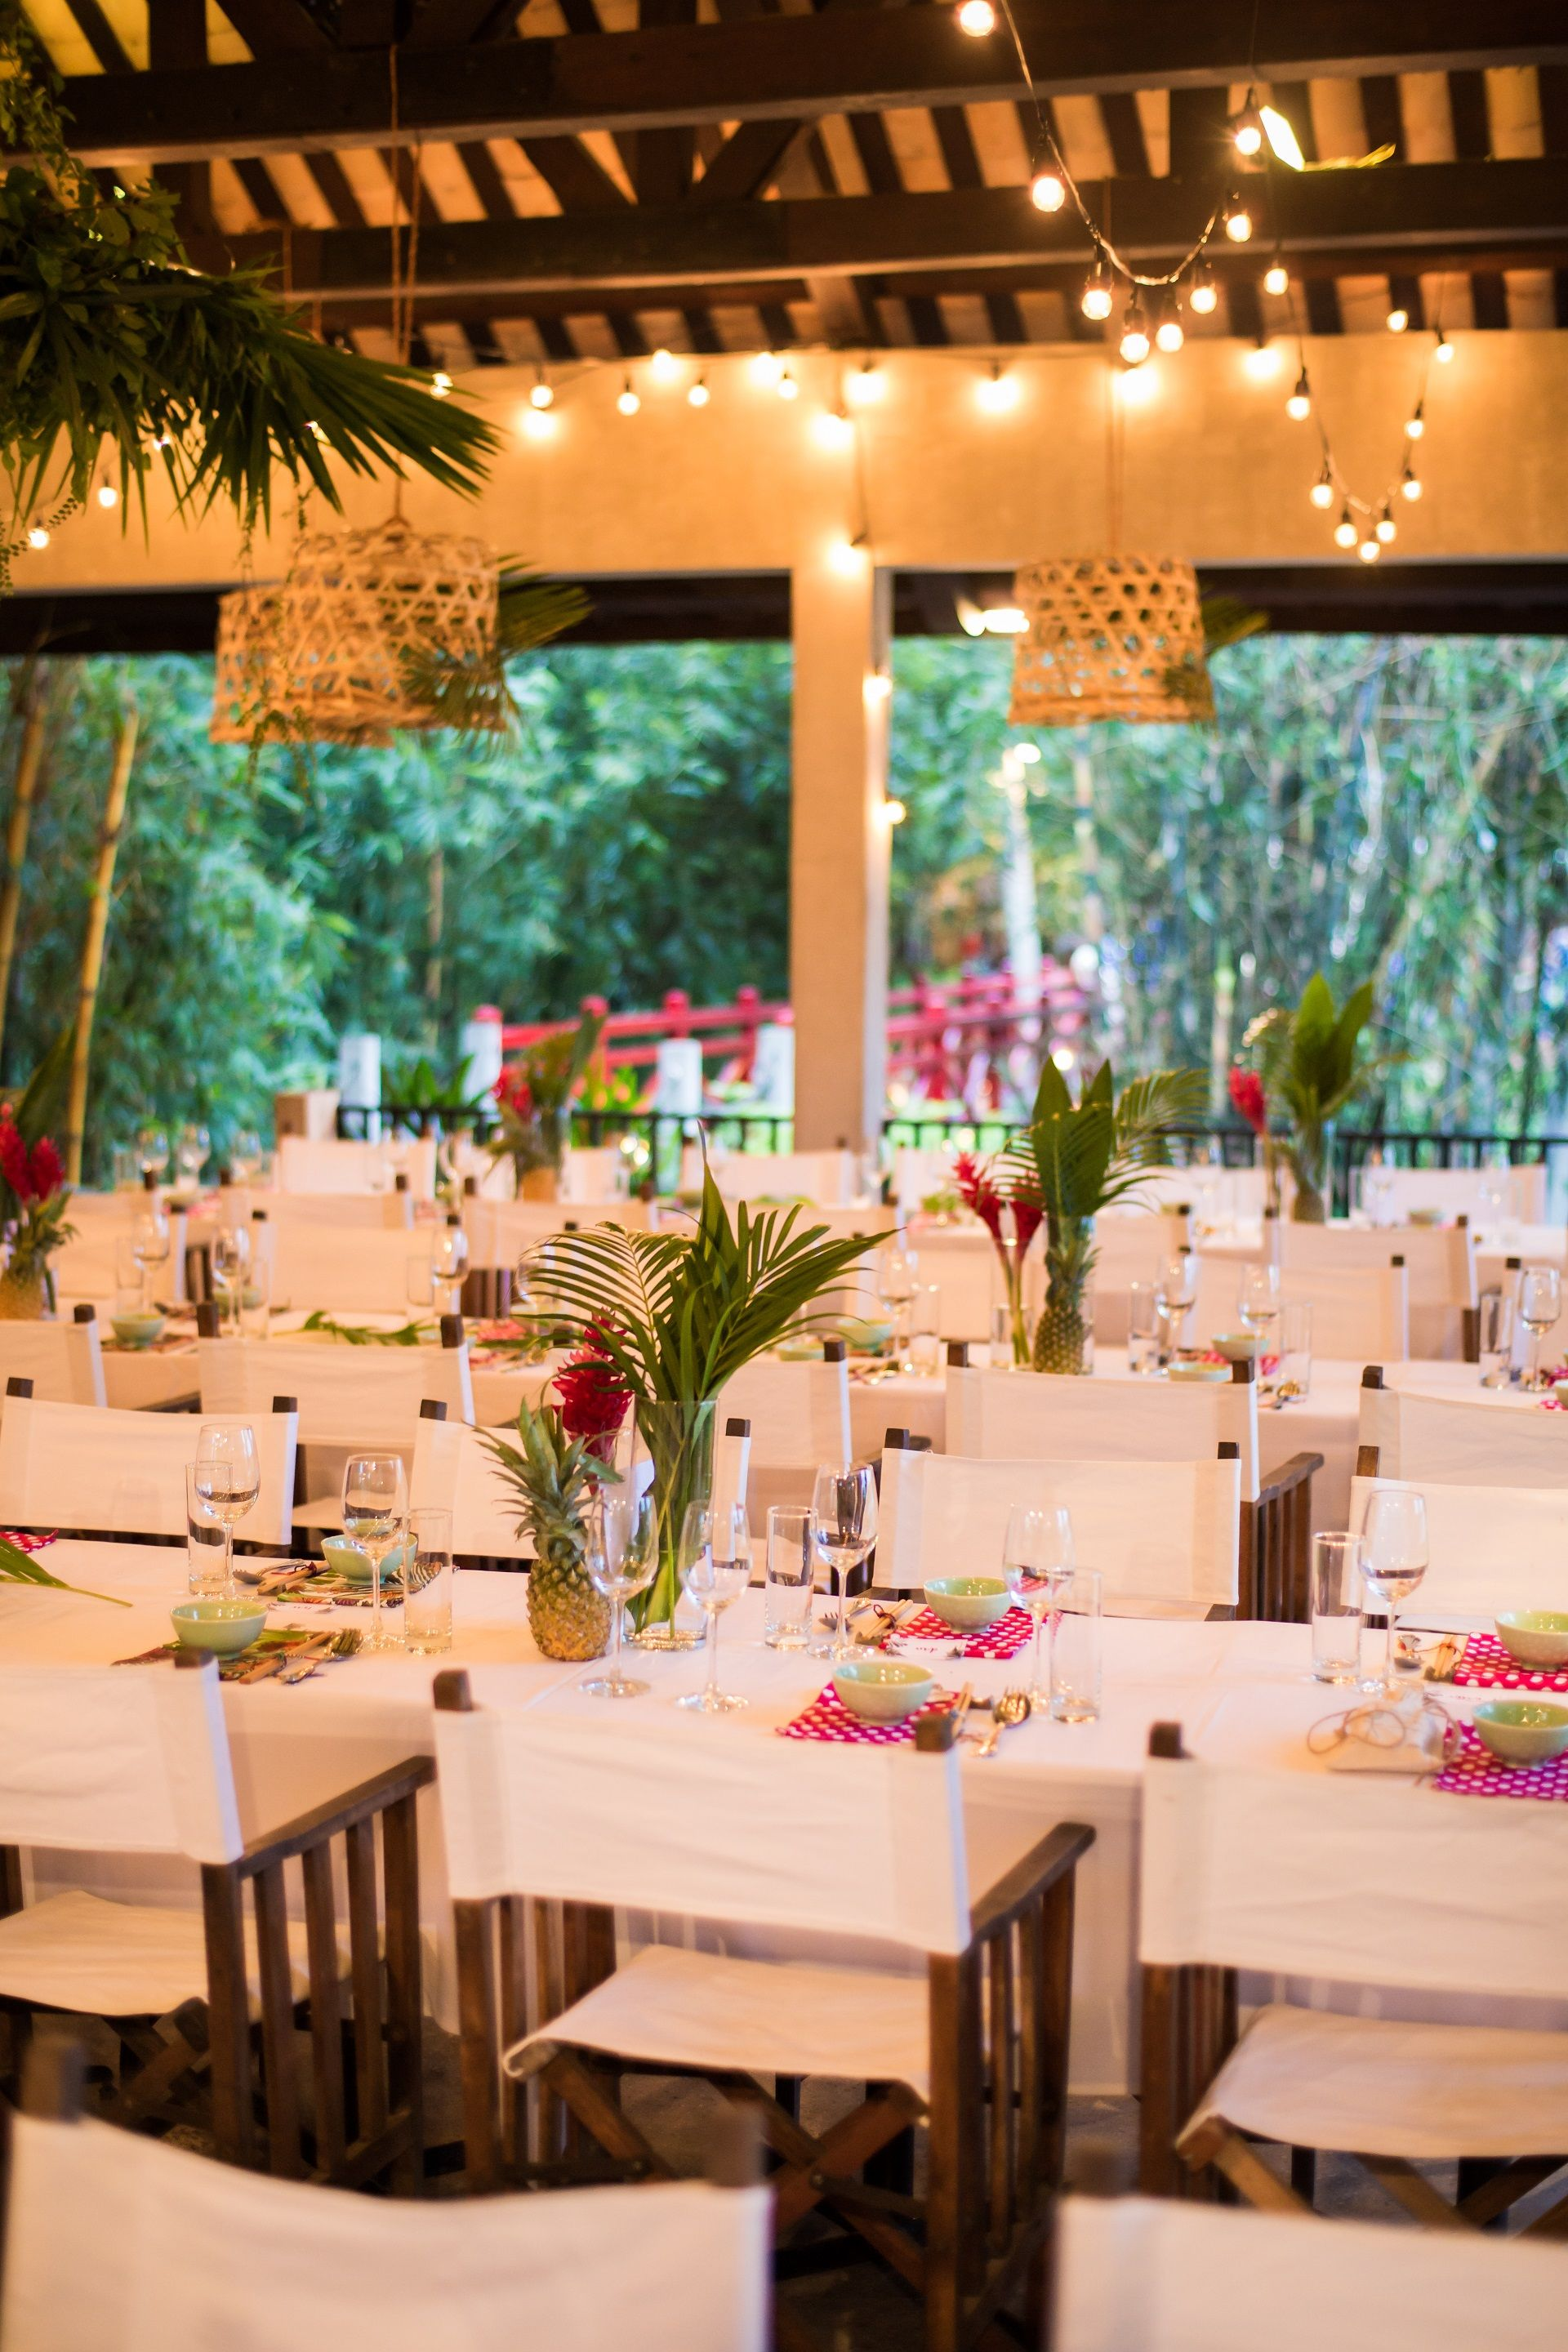 Go Tropical With Pineapples And Bright Colours For A Summery Feel During Your Wedding Reception